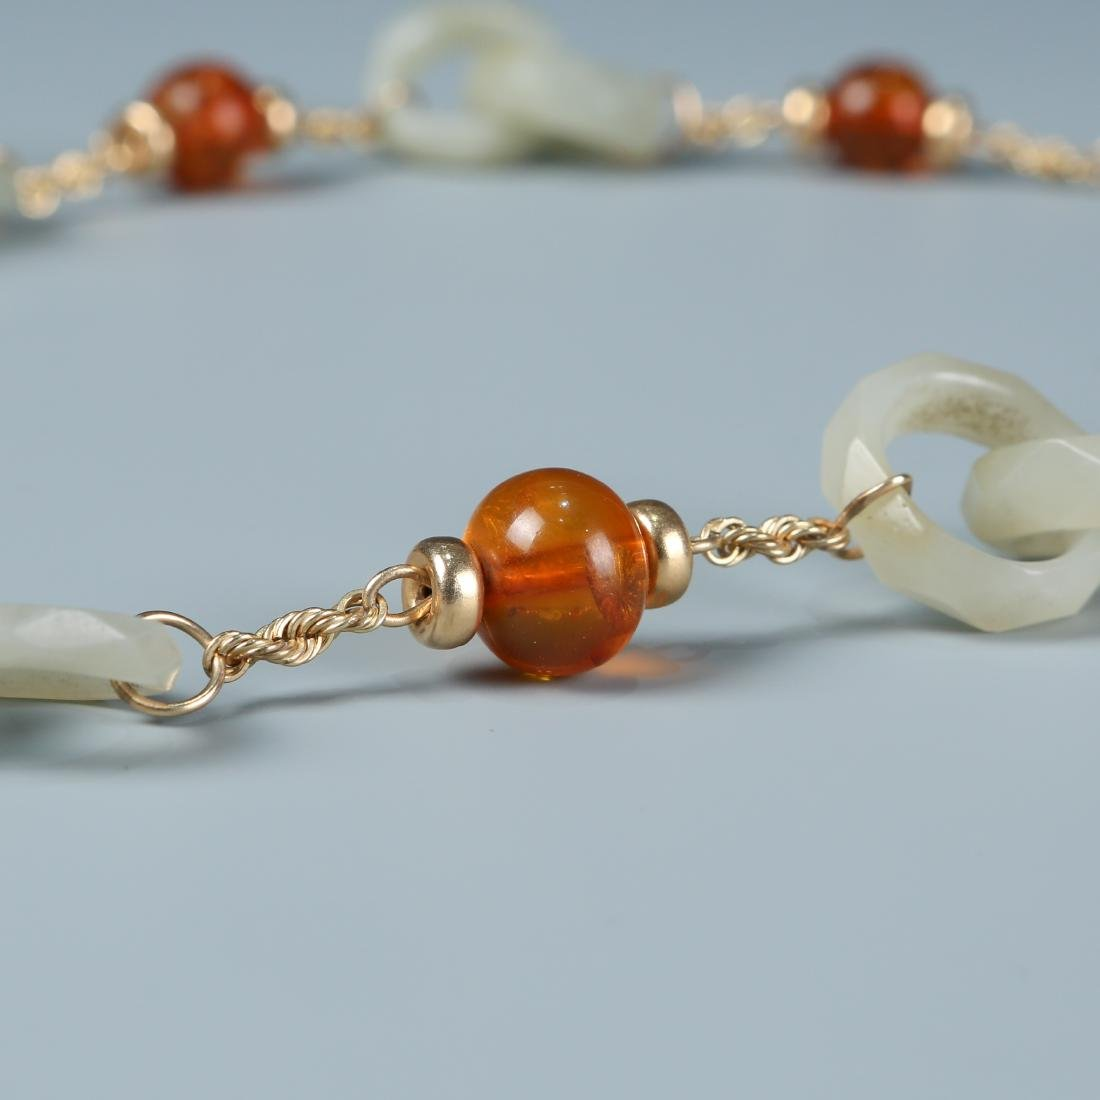 18K Jade Necklace of Rings with Amber Beads - 4